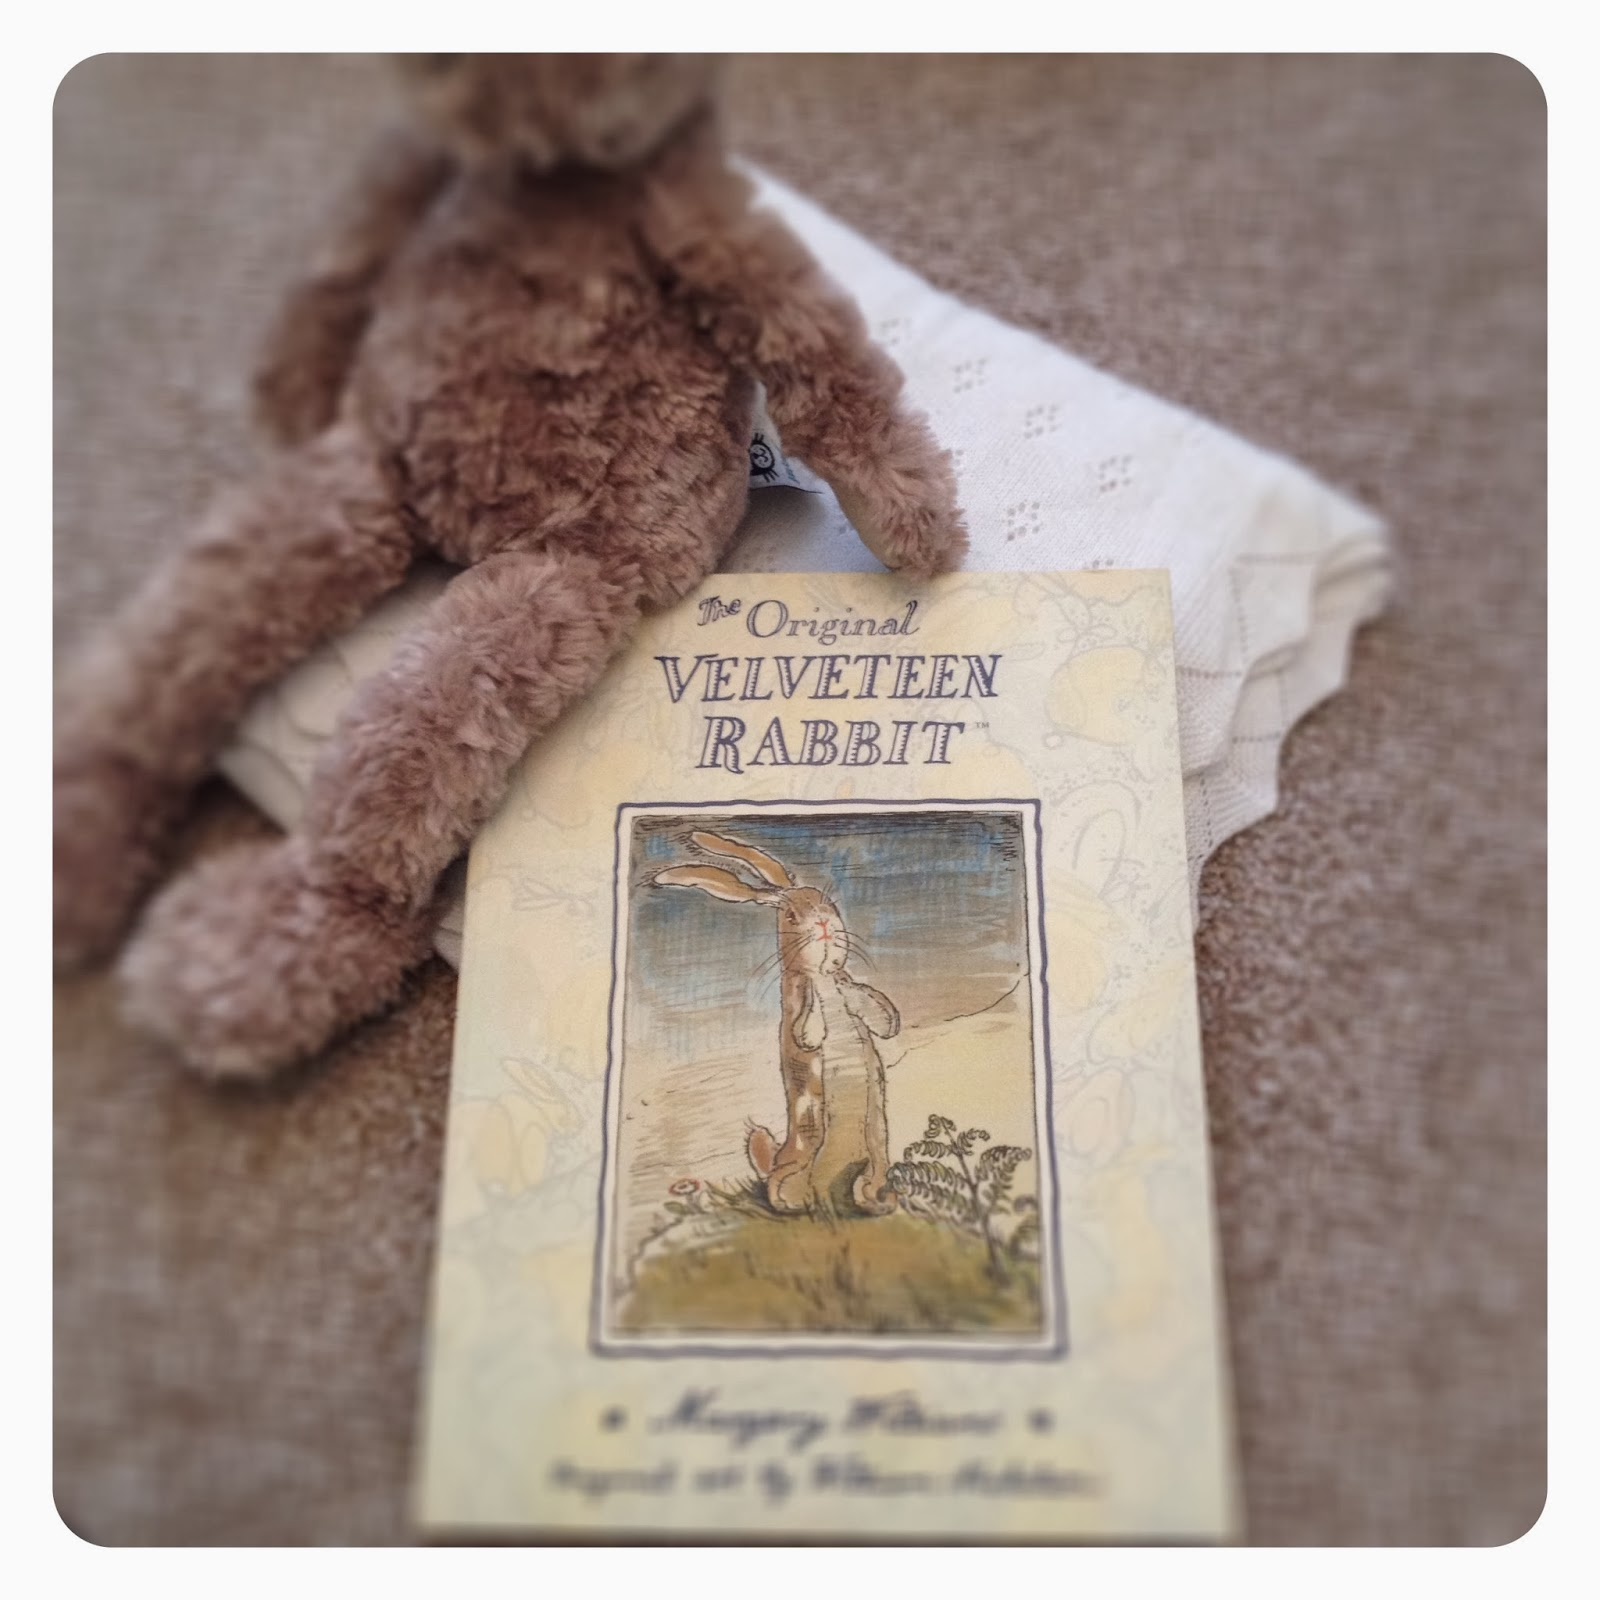 mamasVIB | V. I. BOOKCLUB: Build a classic library for kids (The Original Velveteen Rabbit), The velveteen rabbit | classic baby books | V.I BOOKCLUB | mamasVIB | build a children's library